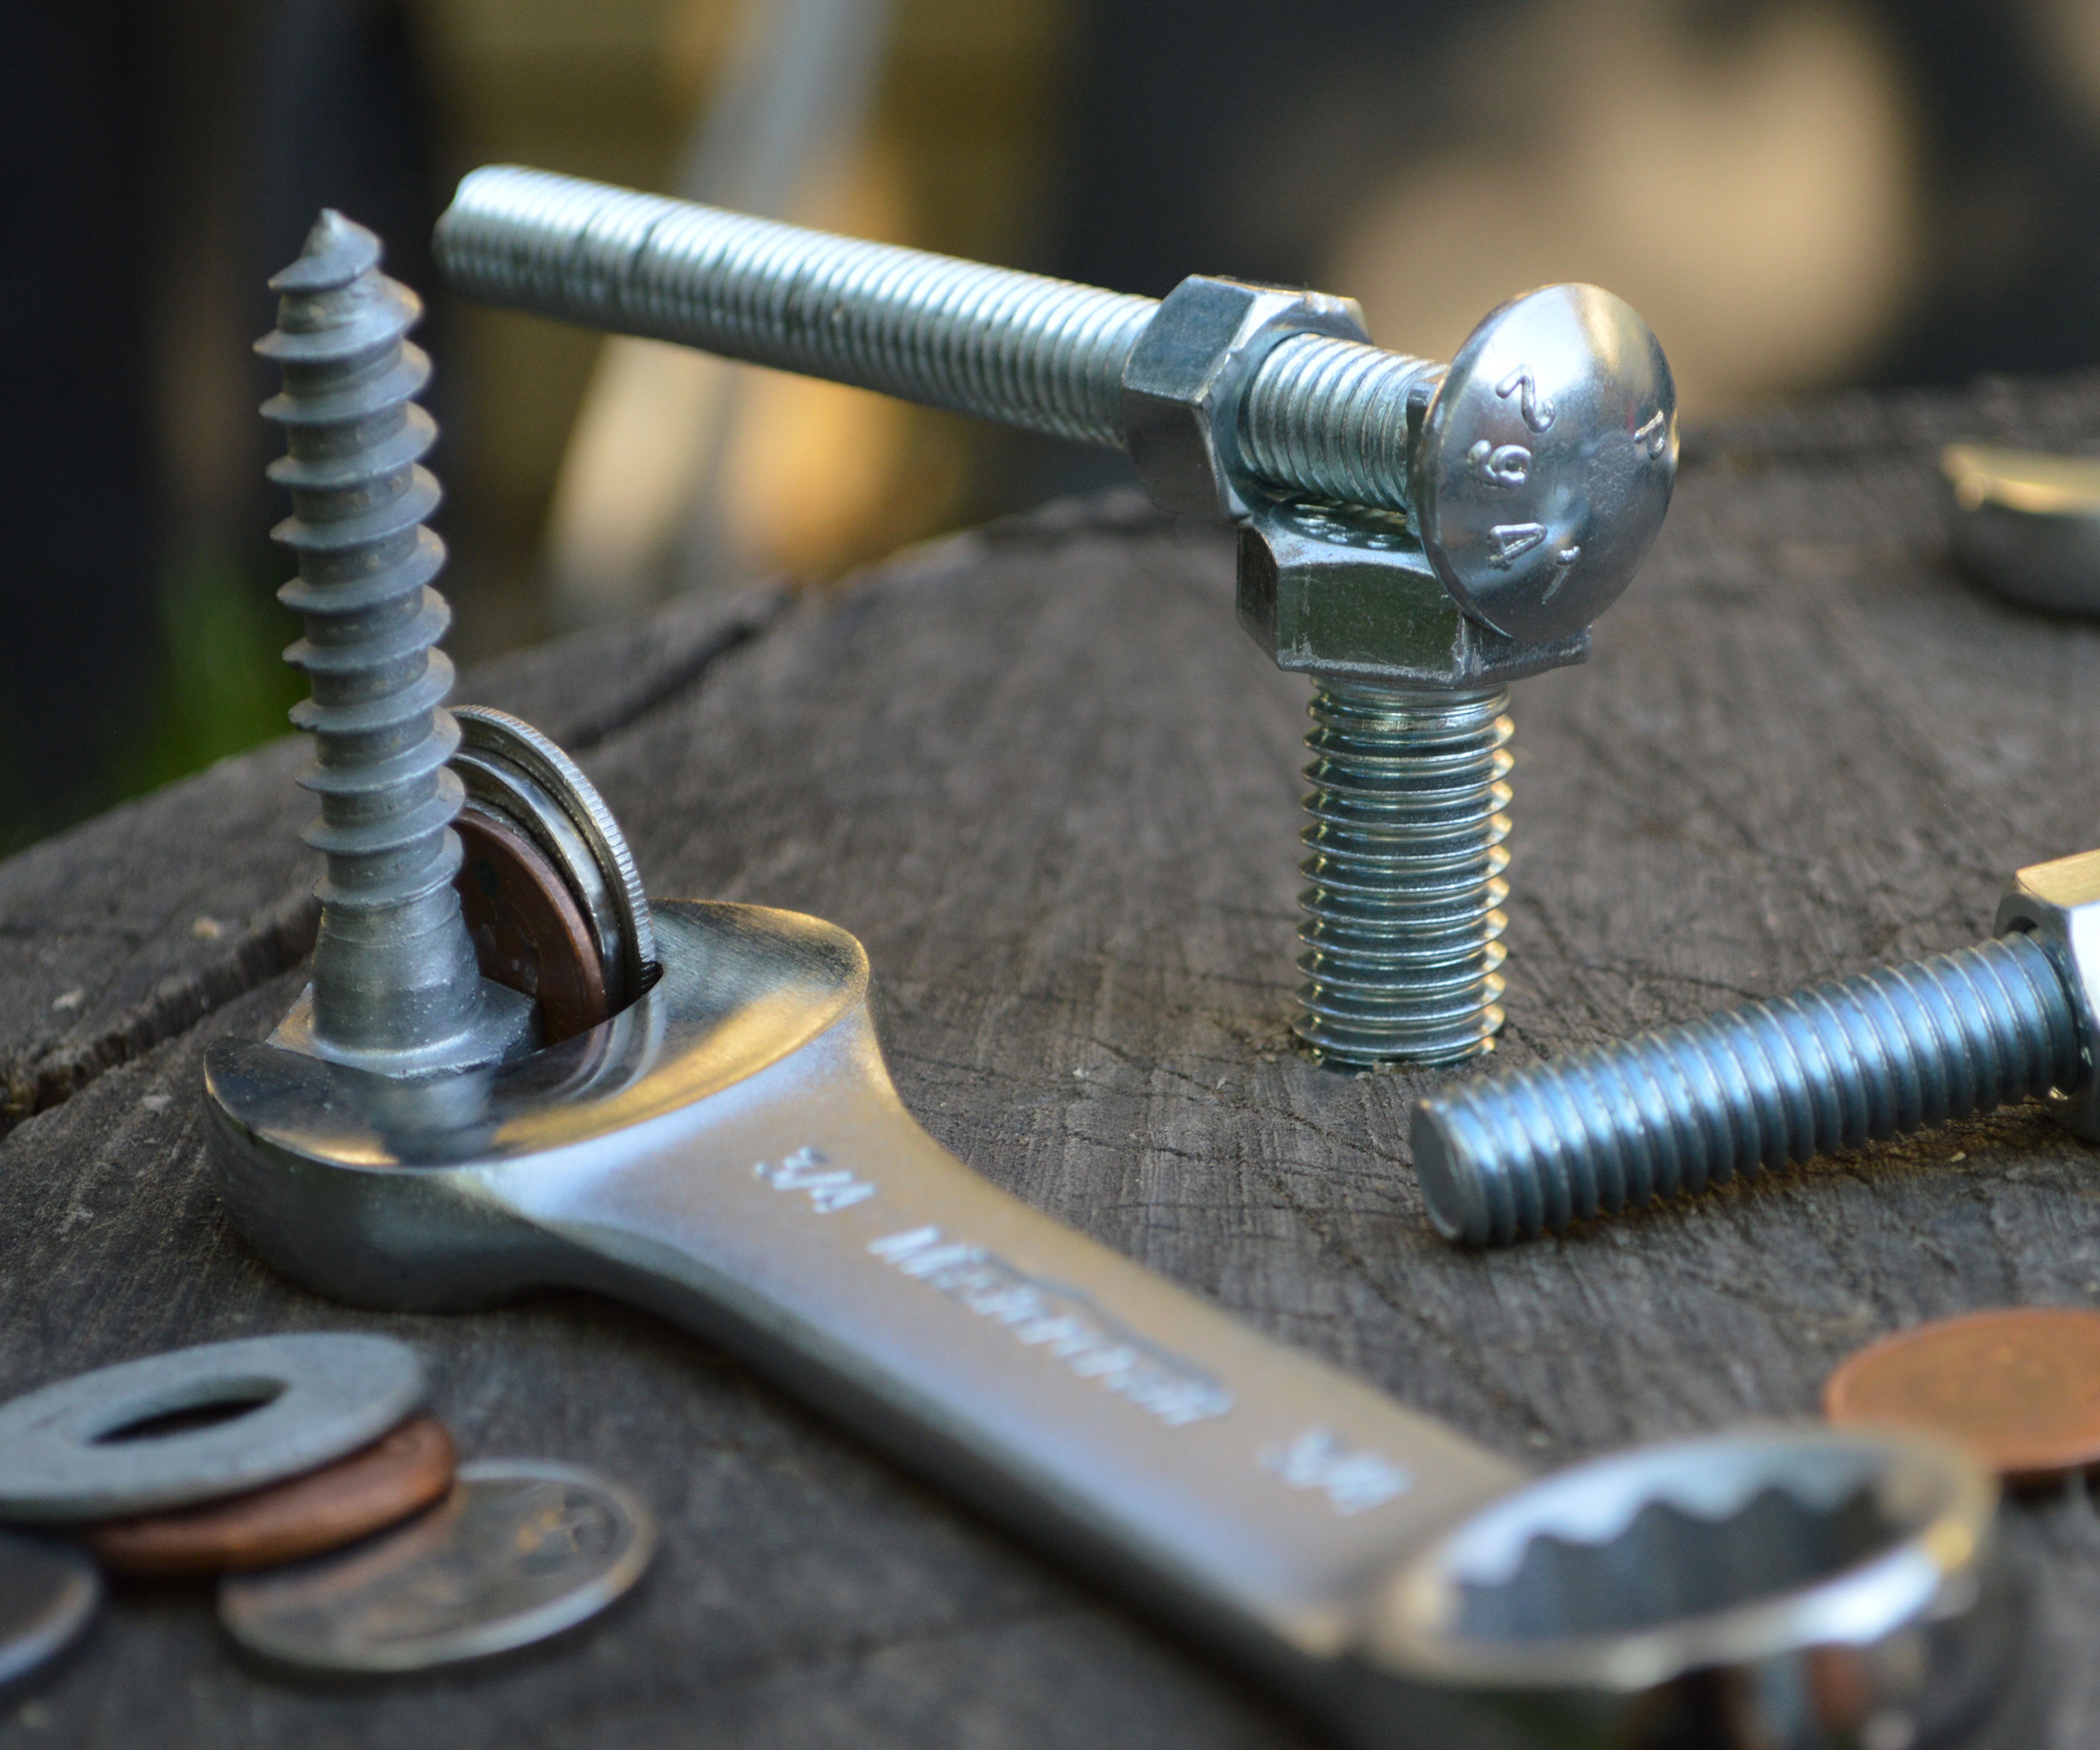 How to Loosen or Tighten Nuts and Bolts With the Wrong Size Wrench